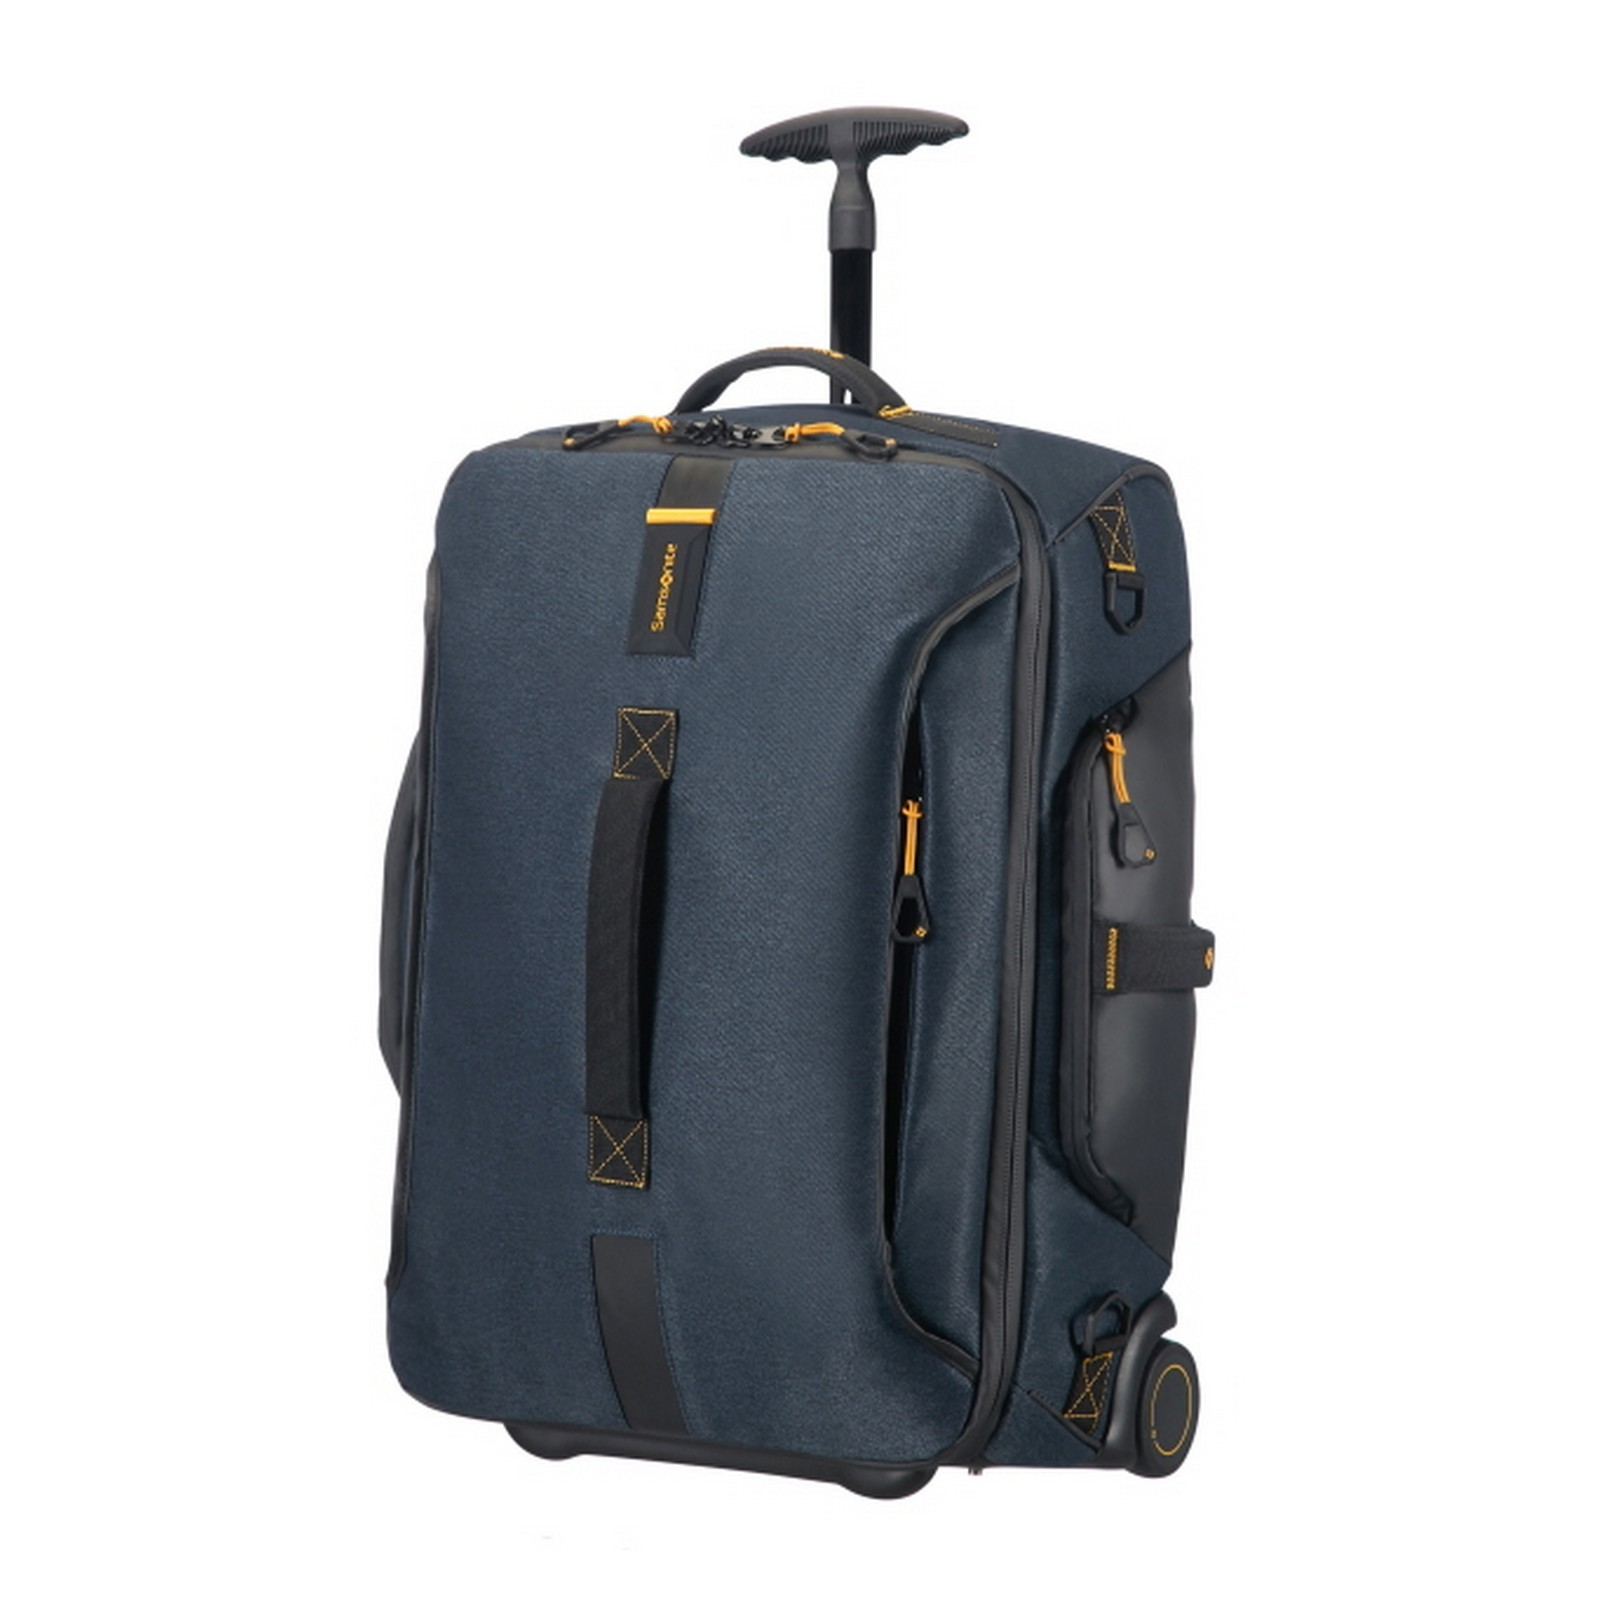 samsonite paradiver light wheeled duffle strict cabin size